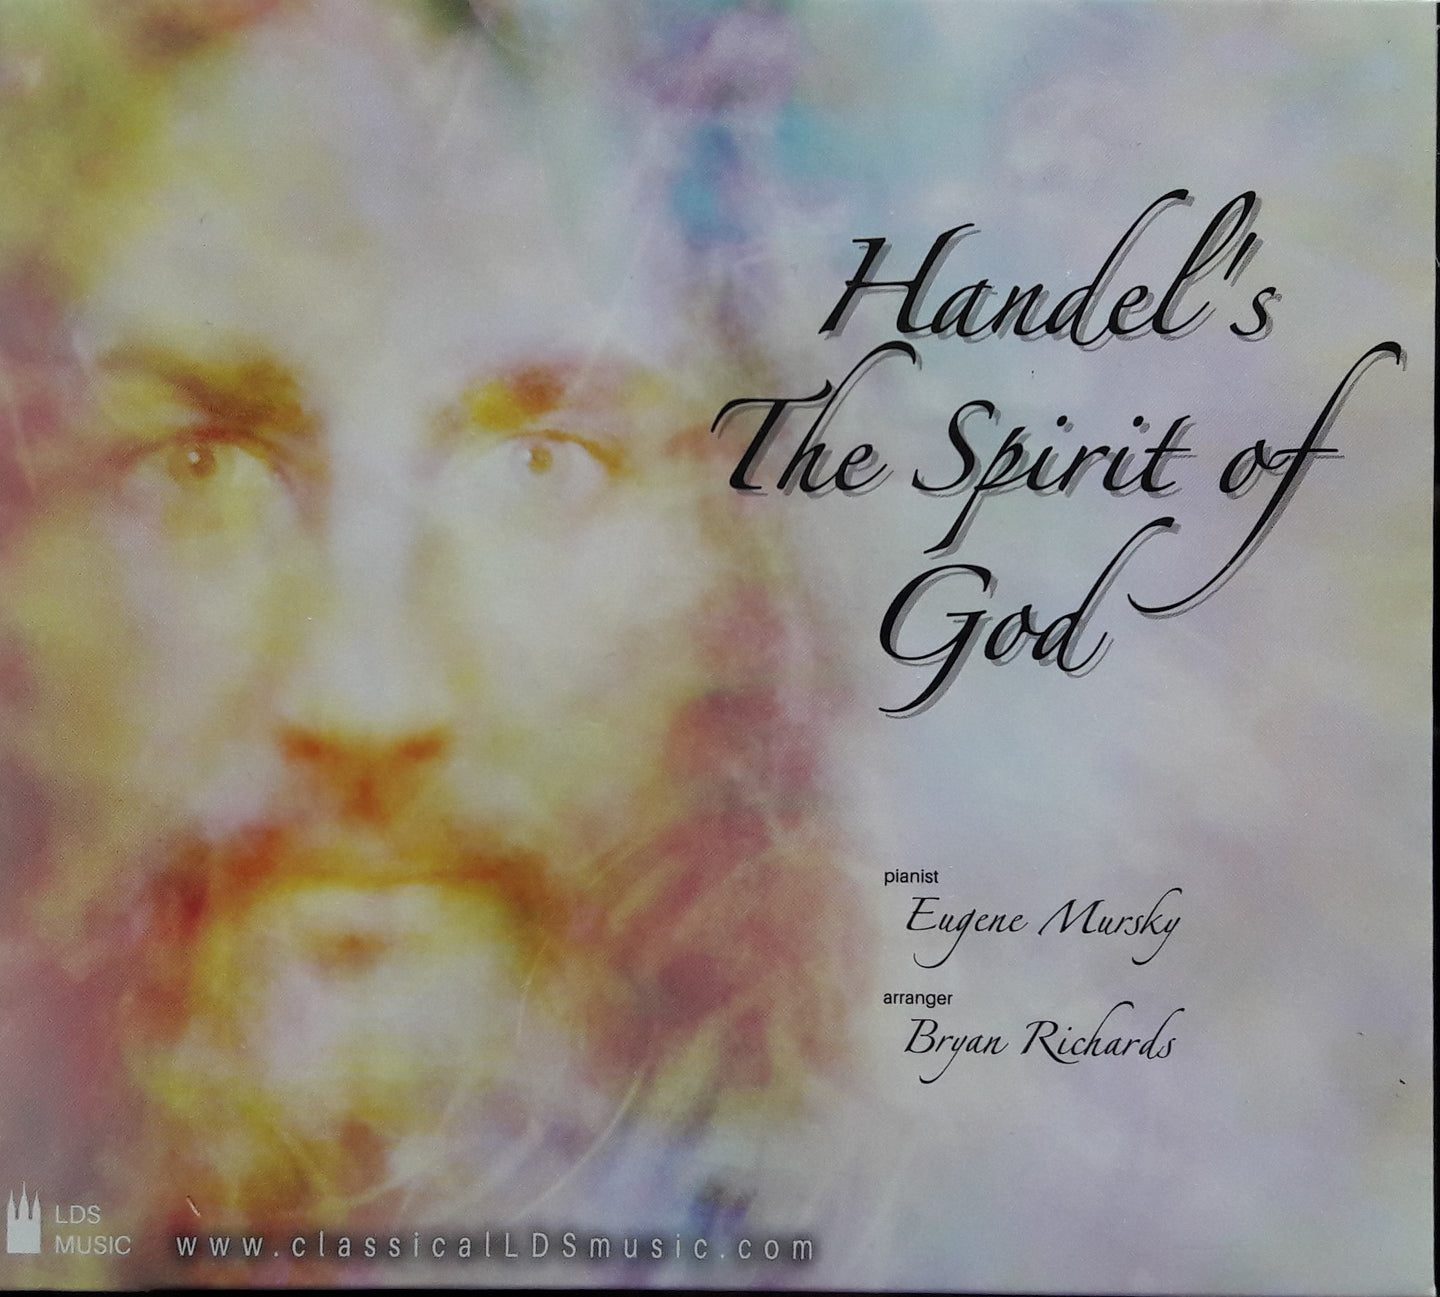 Handel's The Spirit of God